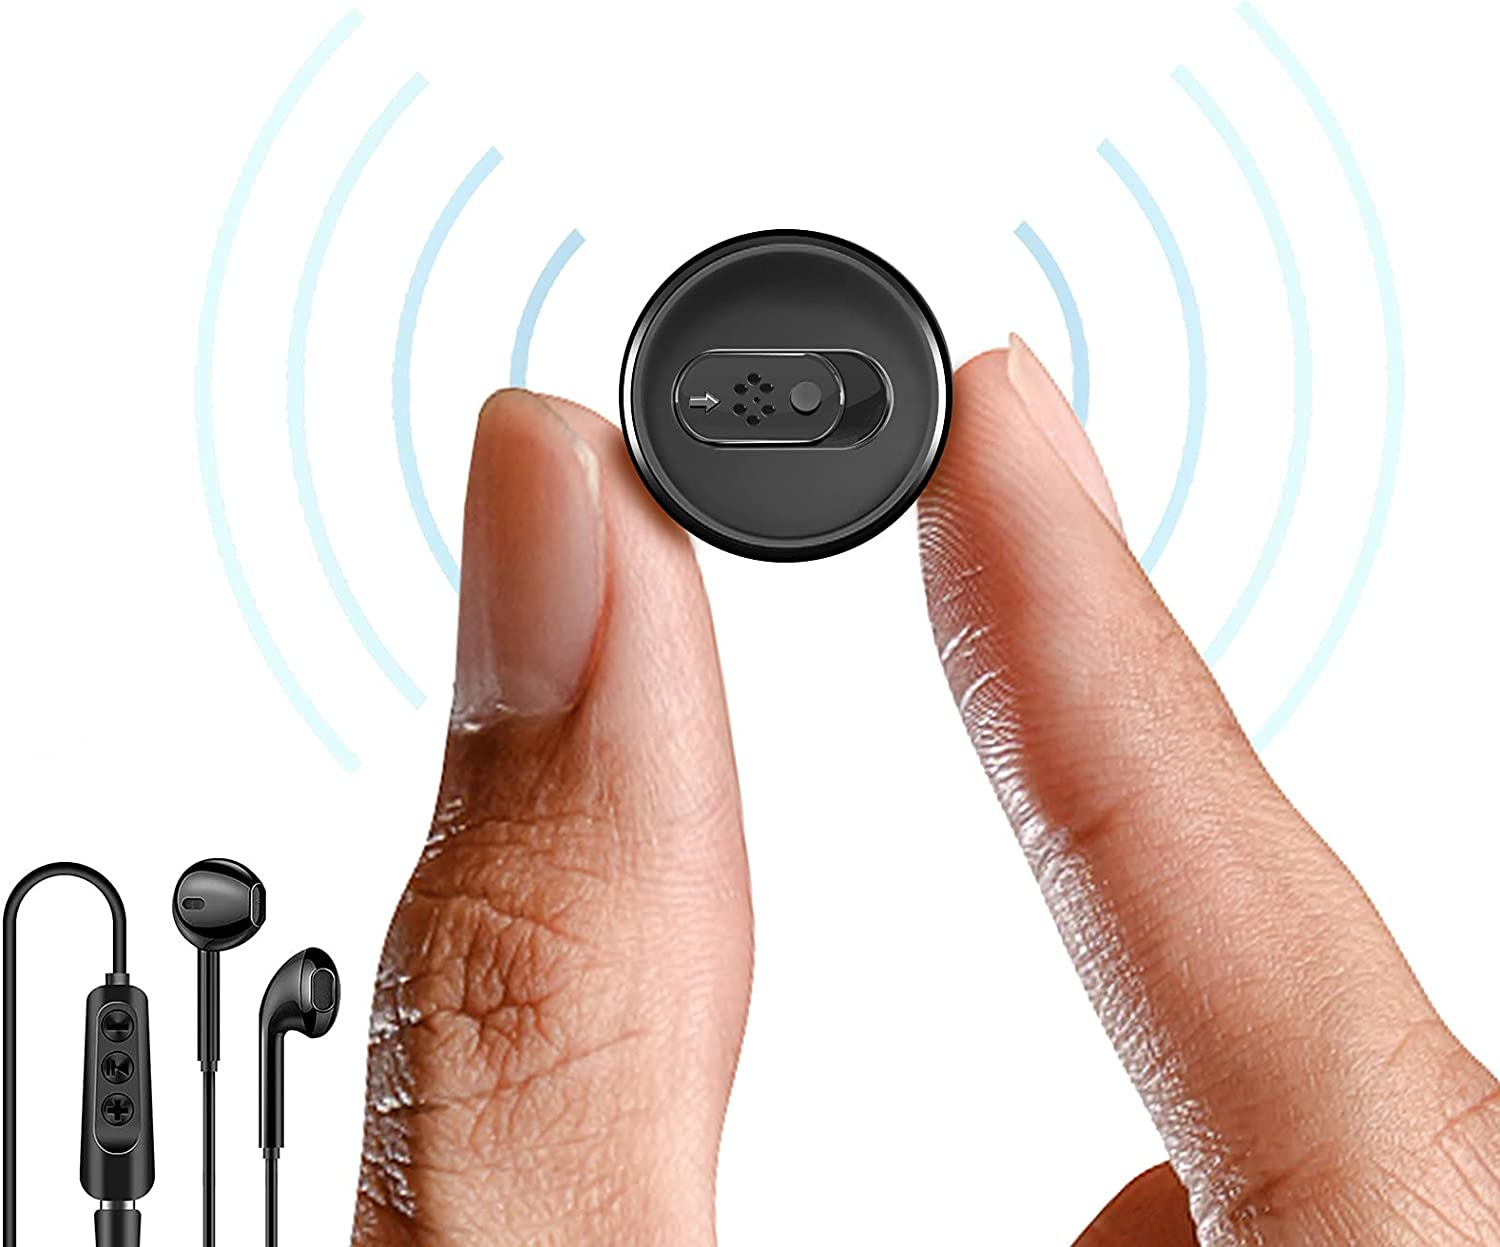 Hfuear 32GB Mini Voice Max 47% OFF Discount is also underway Small Recorder Activated